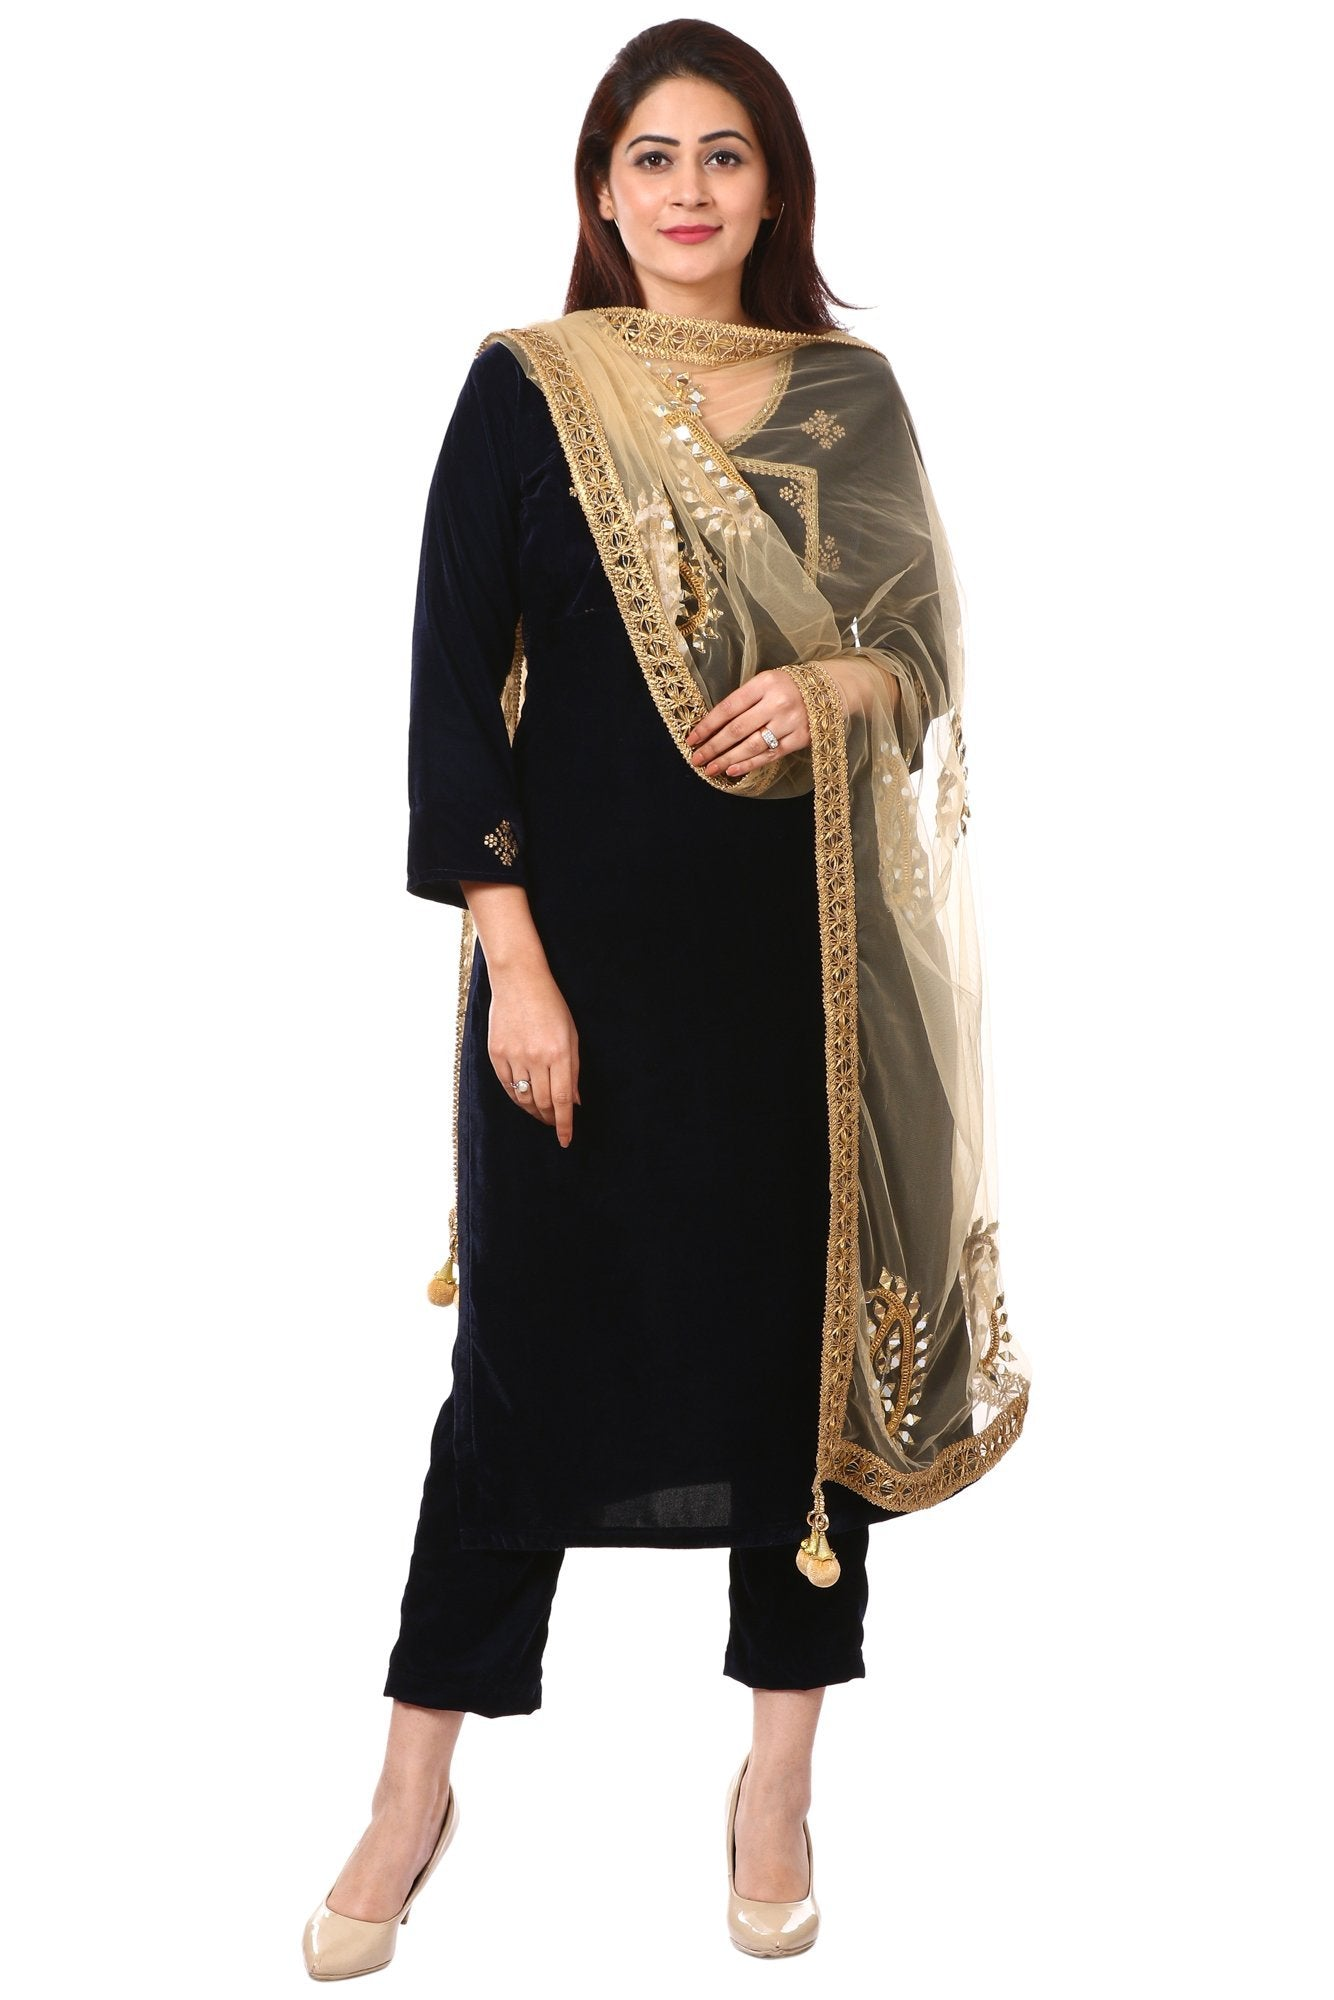 42782fd911 Home > Products > Blue Stars Embroidered Overlapped Kurti with Straight  Velvet Pants and Gold Paisley Dupatta